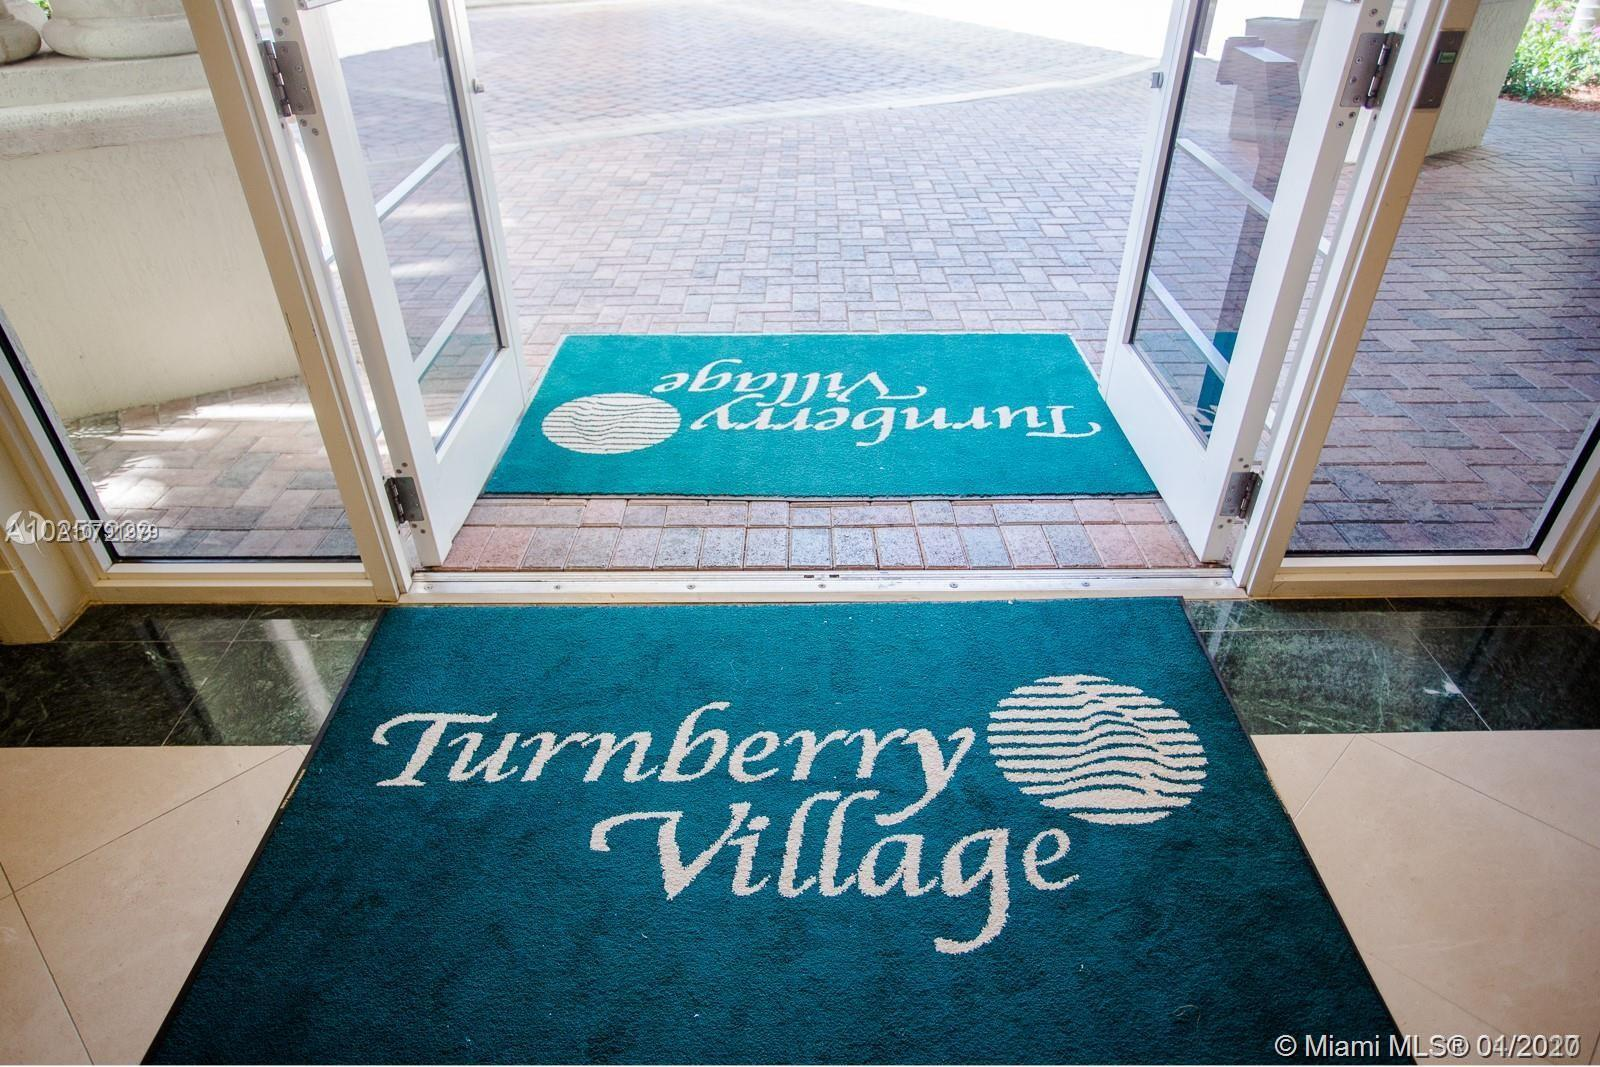 BEAUTIFUL 2 BEDROOMS 2 BATHROOMS WITH ALL THE UPGRADES, LOCATED IN TURNBERRY VILLAGE ON THE GOLF COU